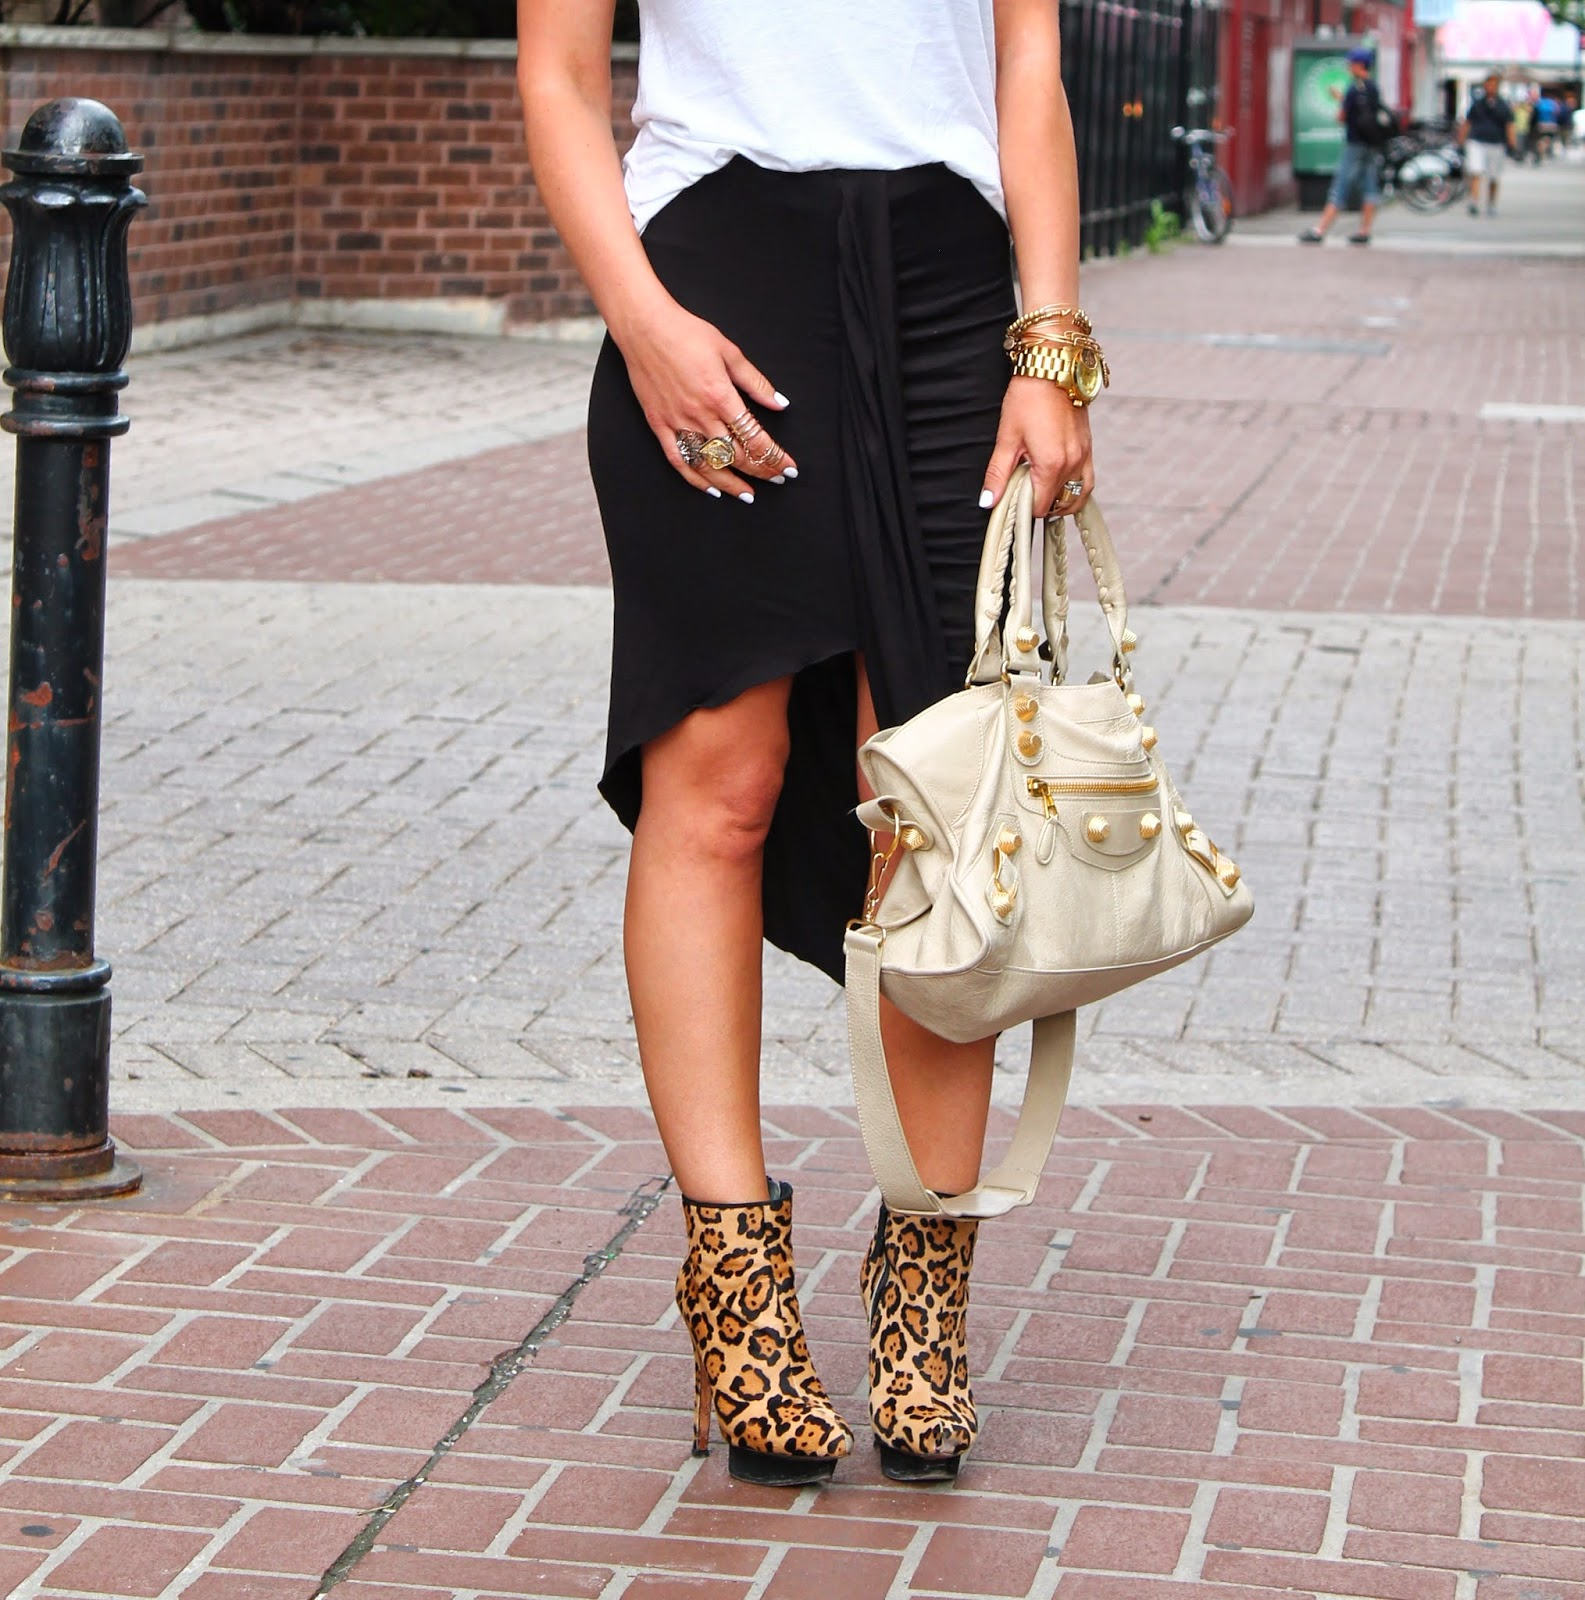 black skirt, black relaxed skirt, relaxed summer outfit, white and black outfit, leopard booties, leopard ankle boots, balenciaga bag, blogerke, letnja moda, canadian fashion blogger, toronto street style, yonge street, dundas square